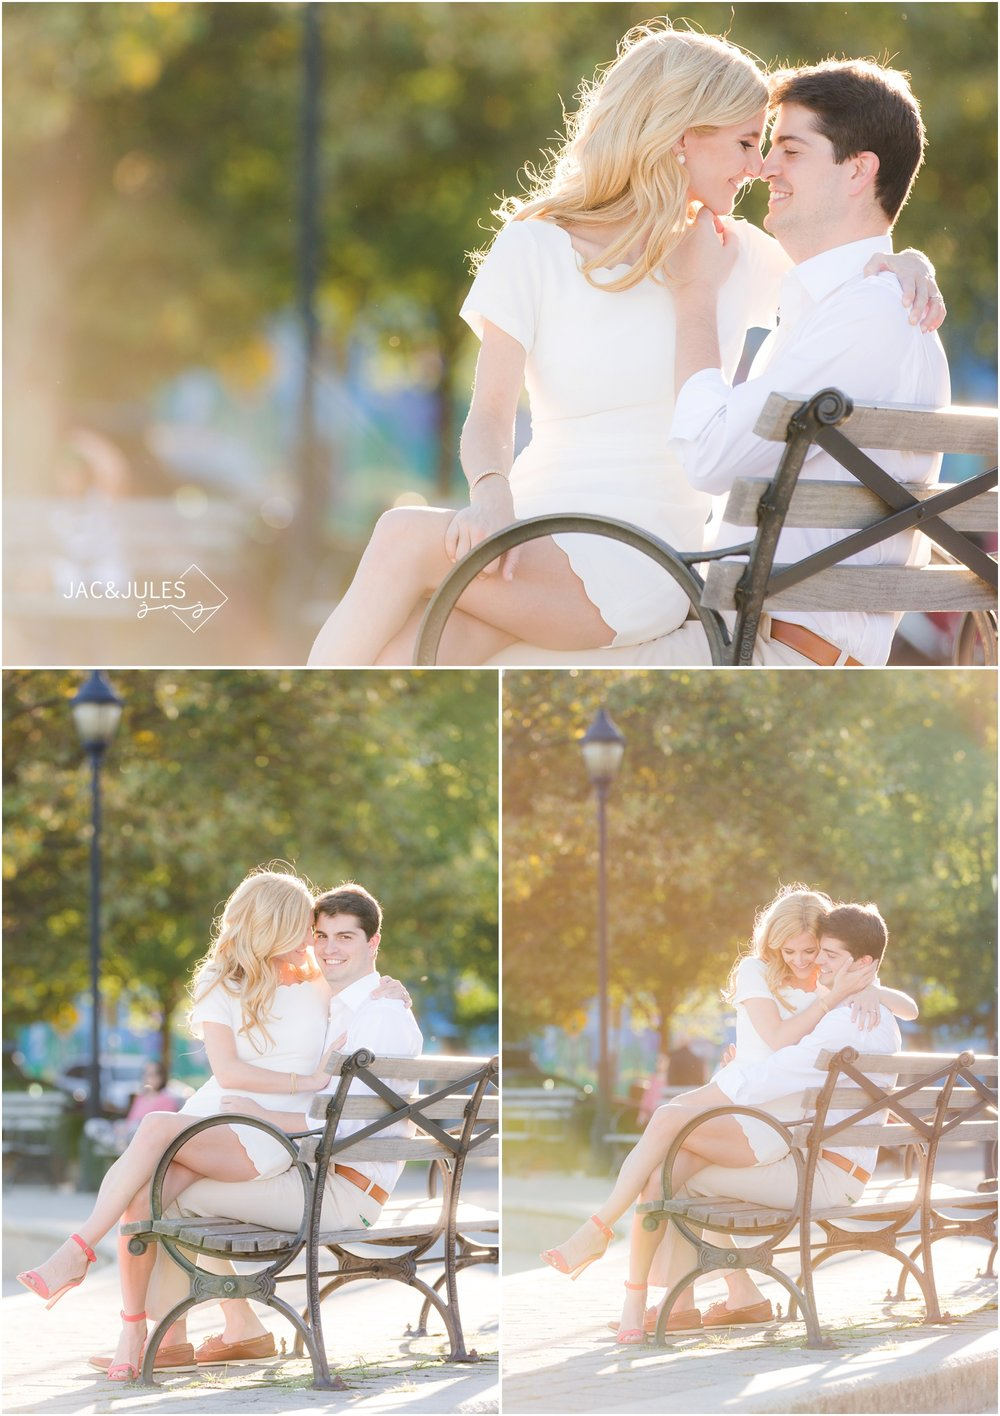 sunny engagement photos on a bench in hoboken, nj.